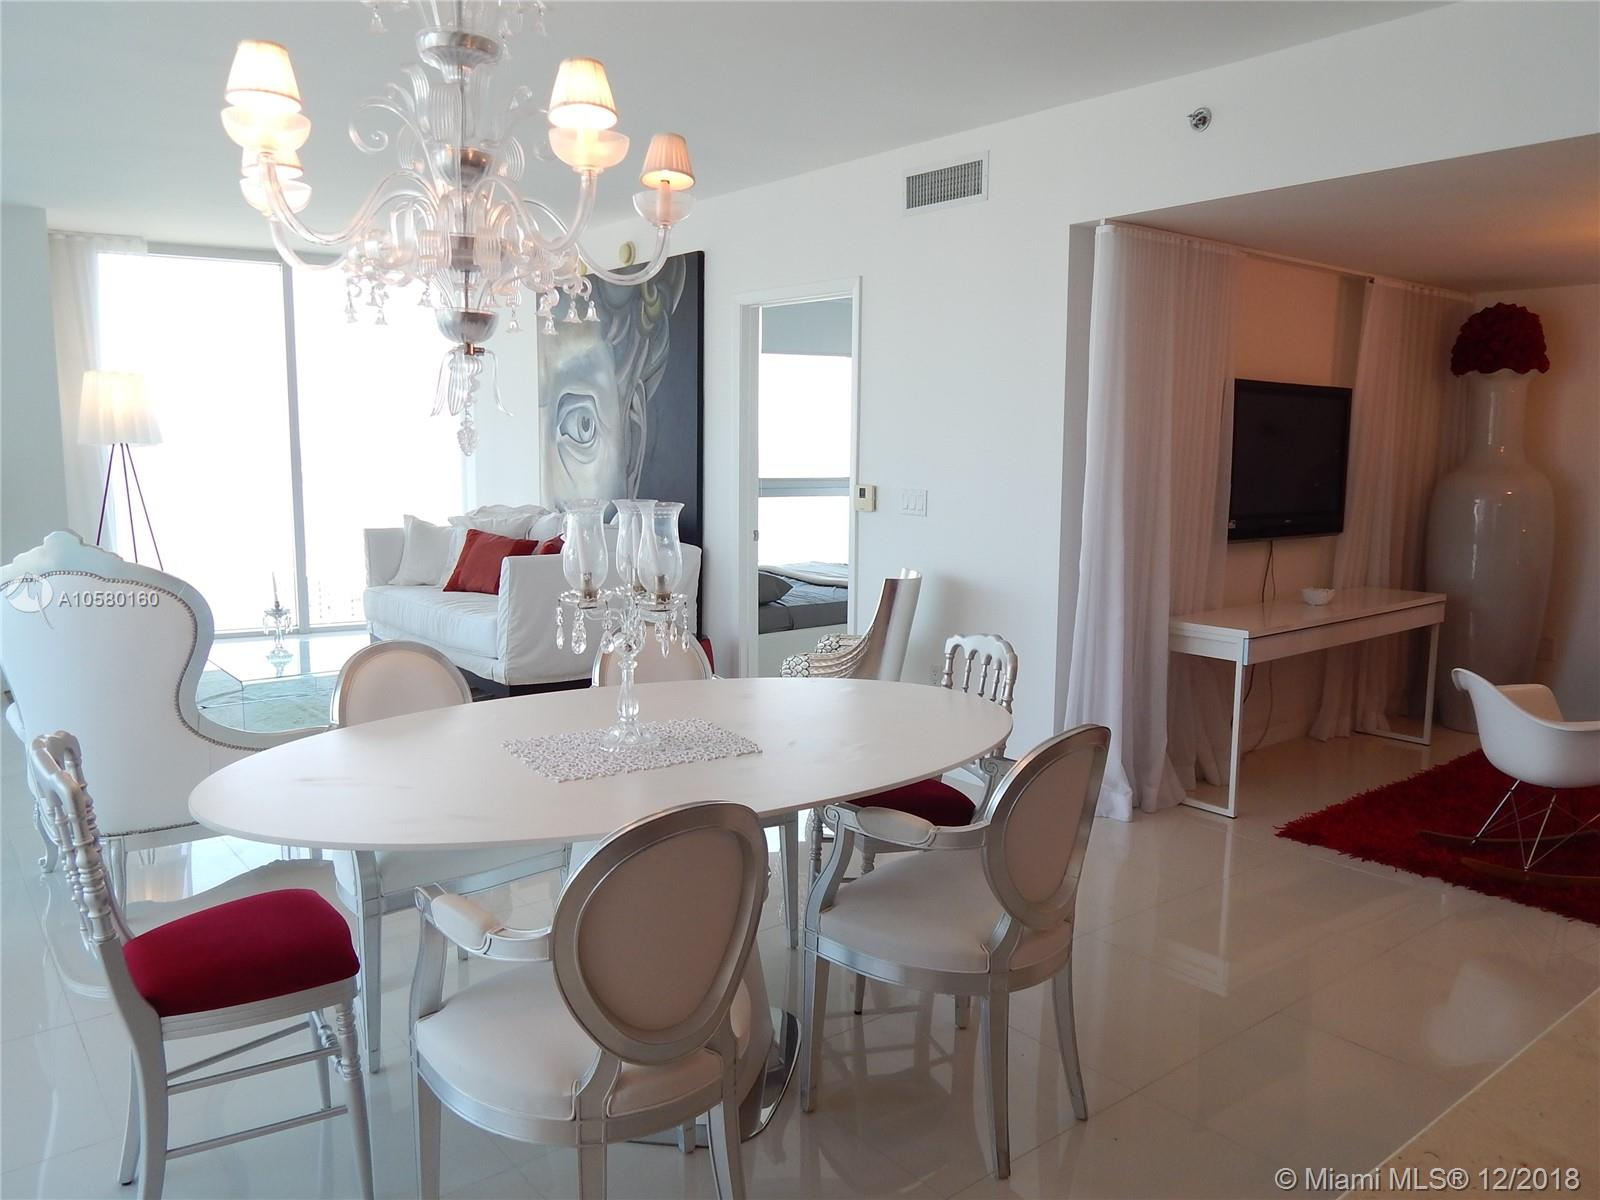 495 Brickell Ave, Miami, FL 33131, Icon Brickell II #3702, Brickell, Miami A10580160 image #5